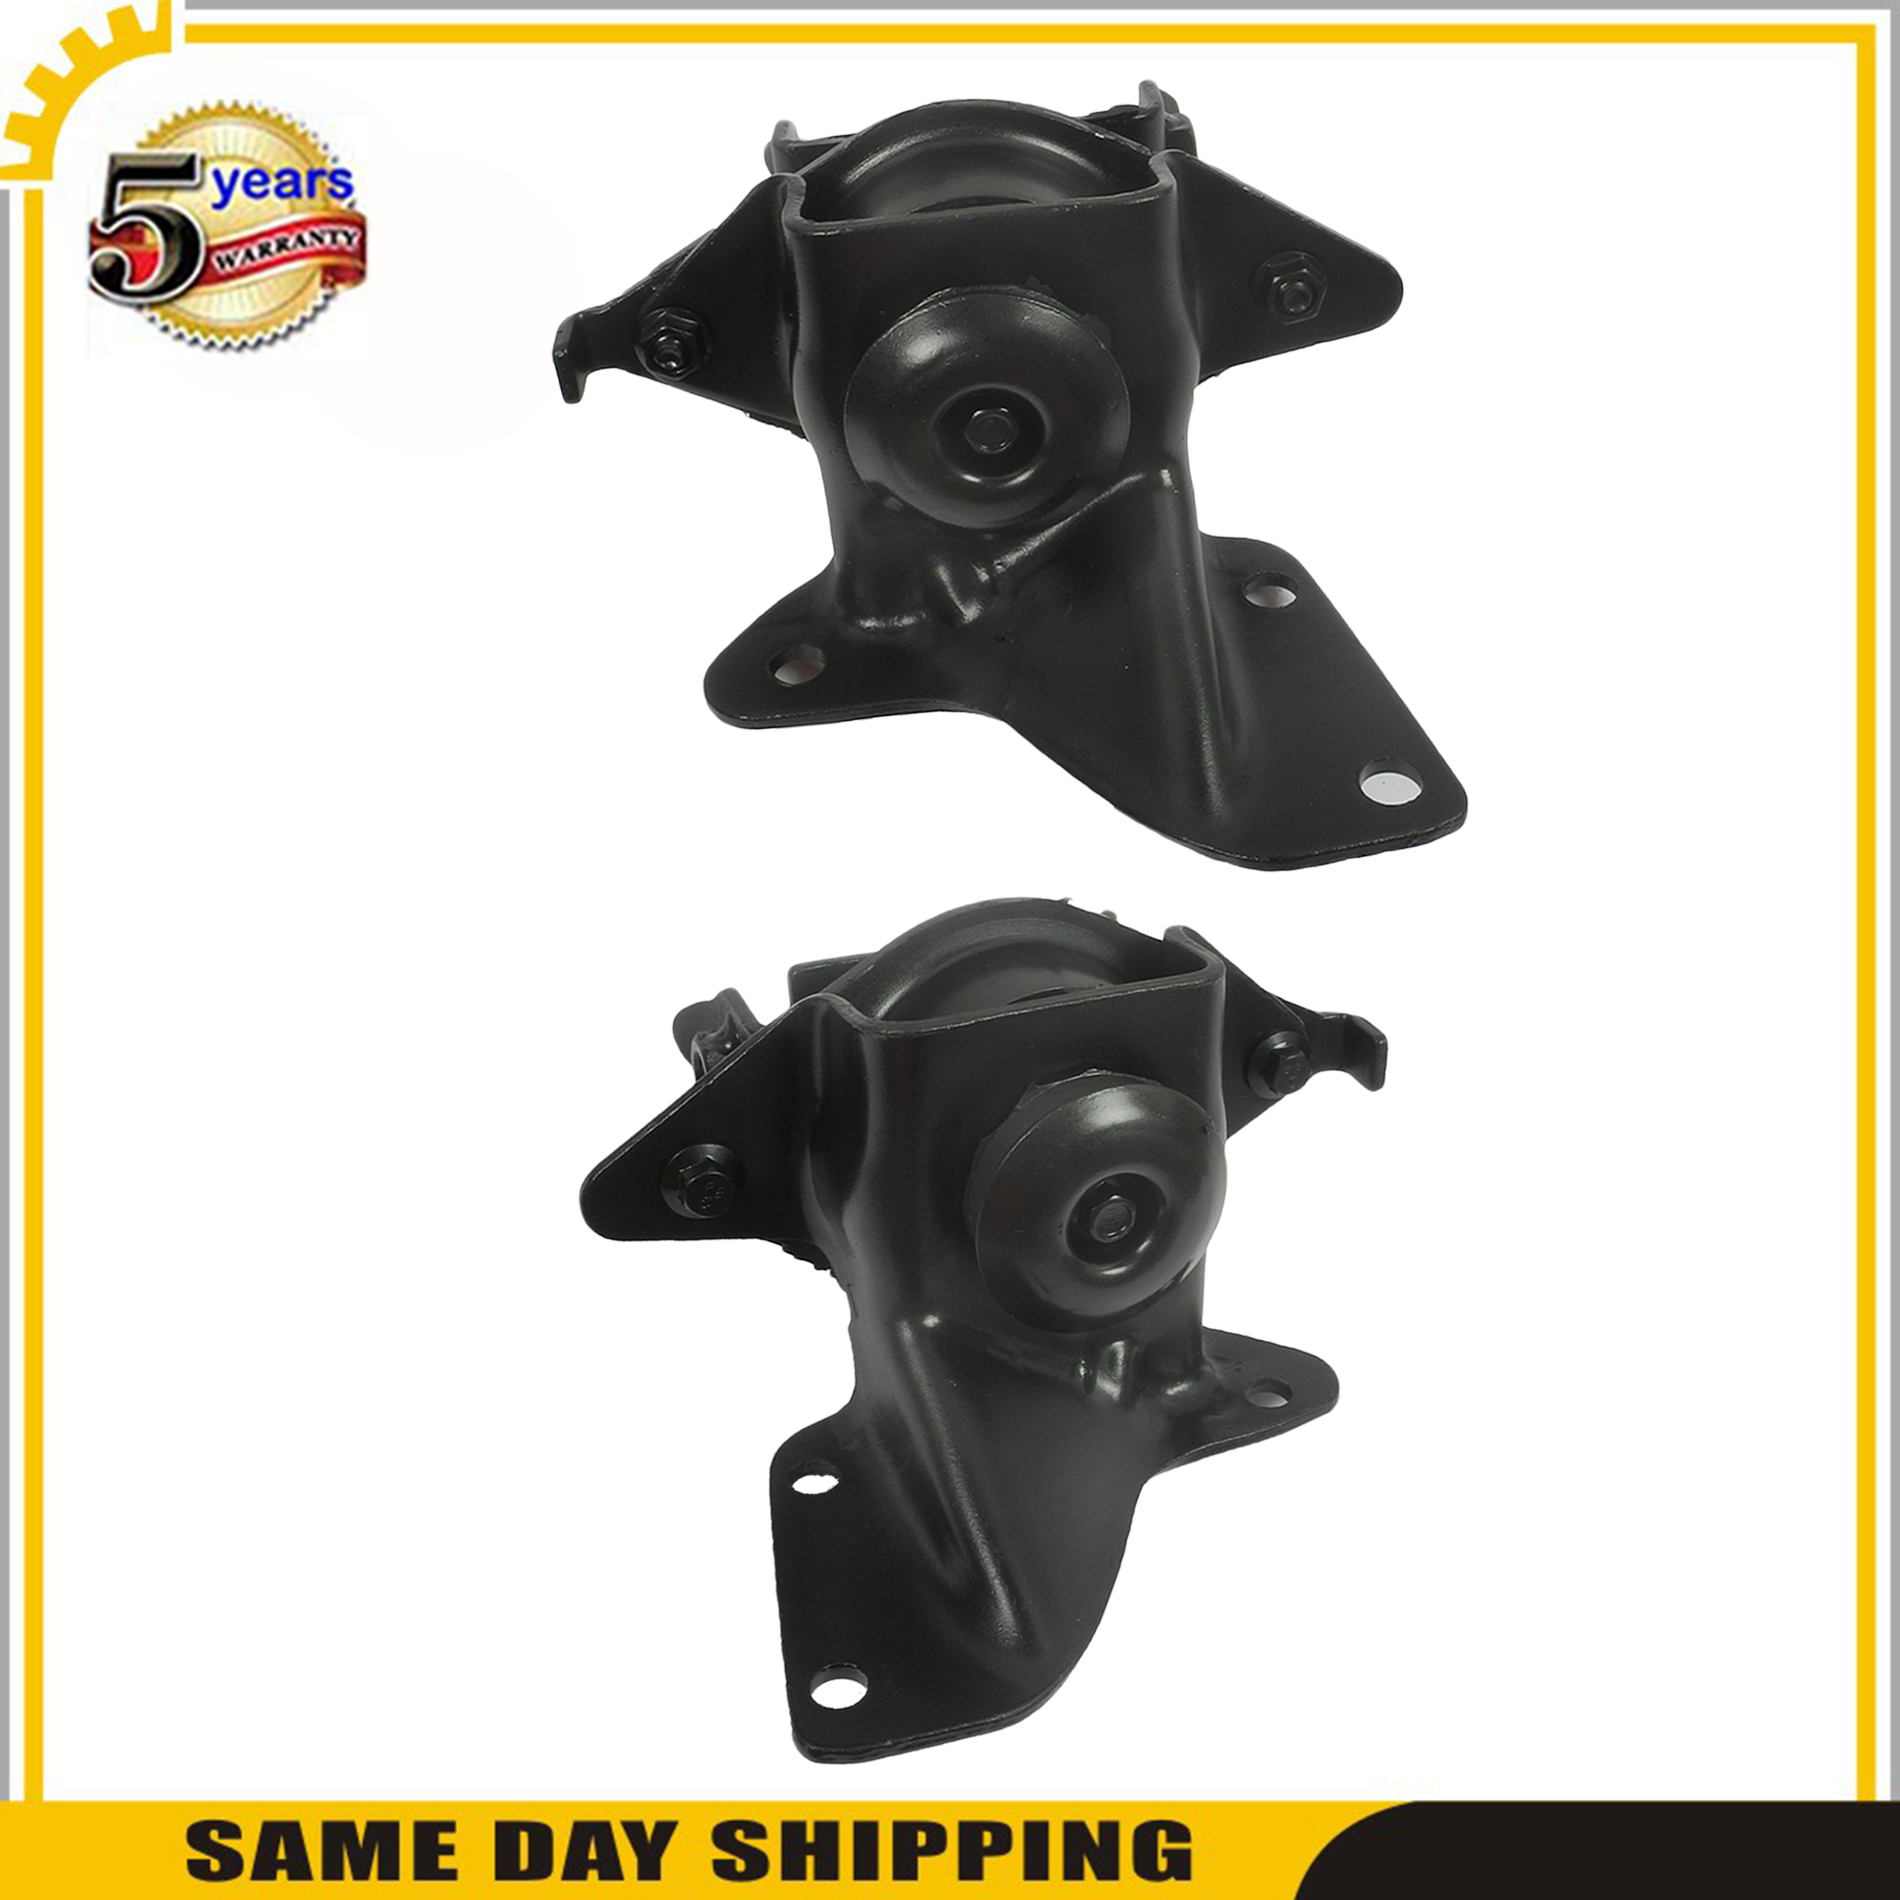 For Front Left /& Right Engine Motor Mount 5117 5118 1987-1993 Ford Mustang 2.3L